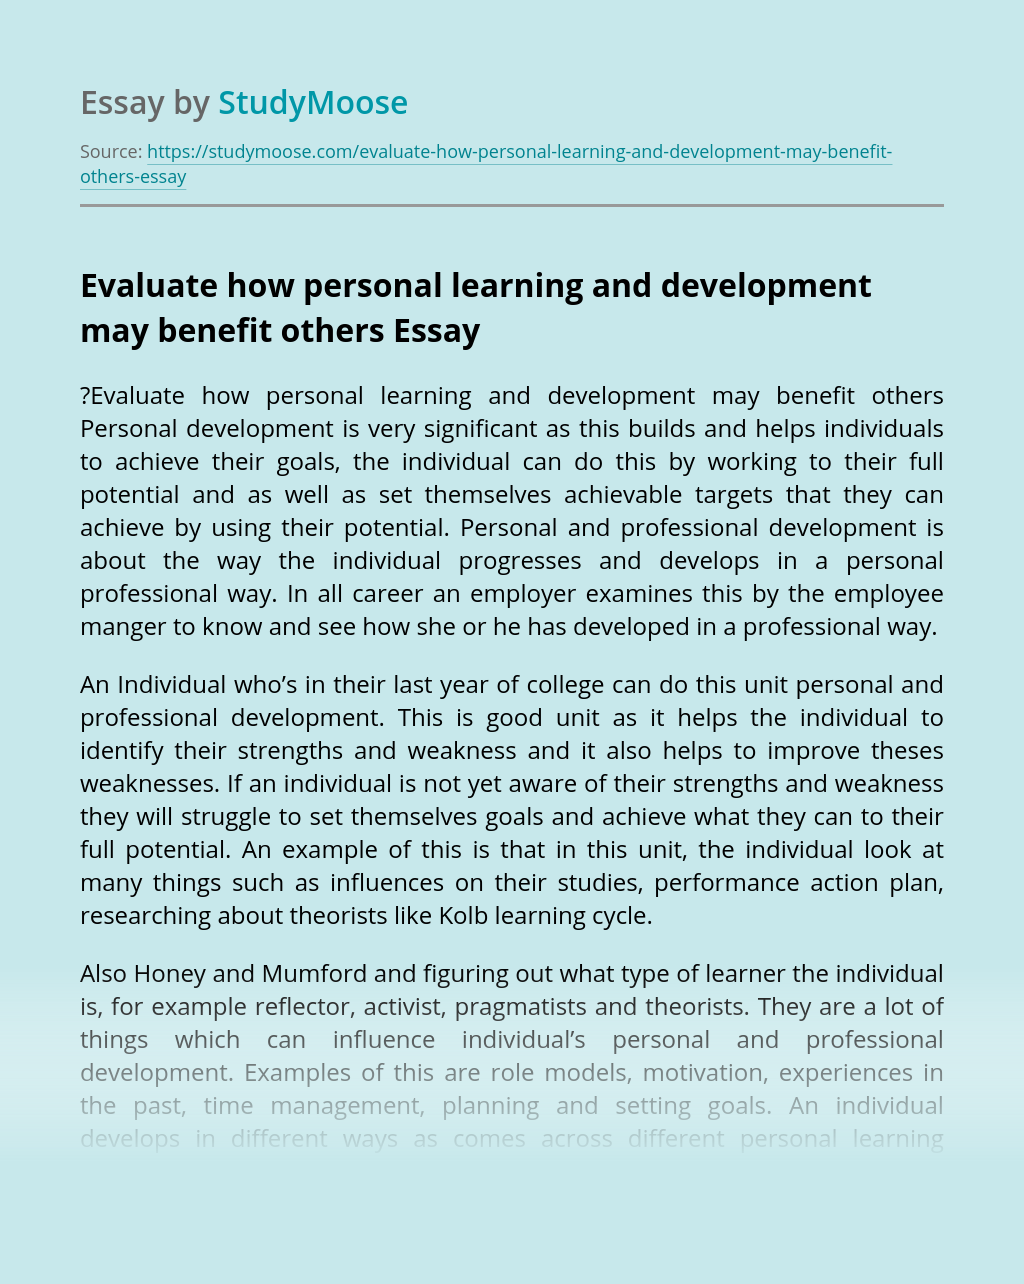 Evaluate how personal learning and development may benefit others